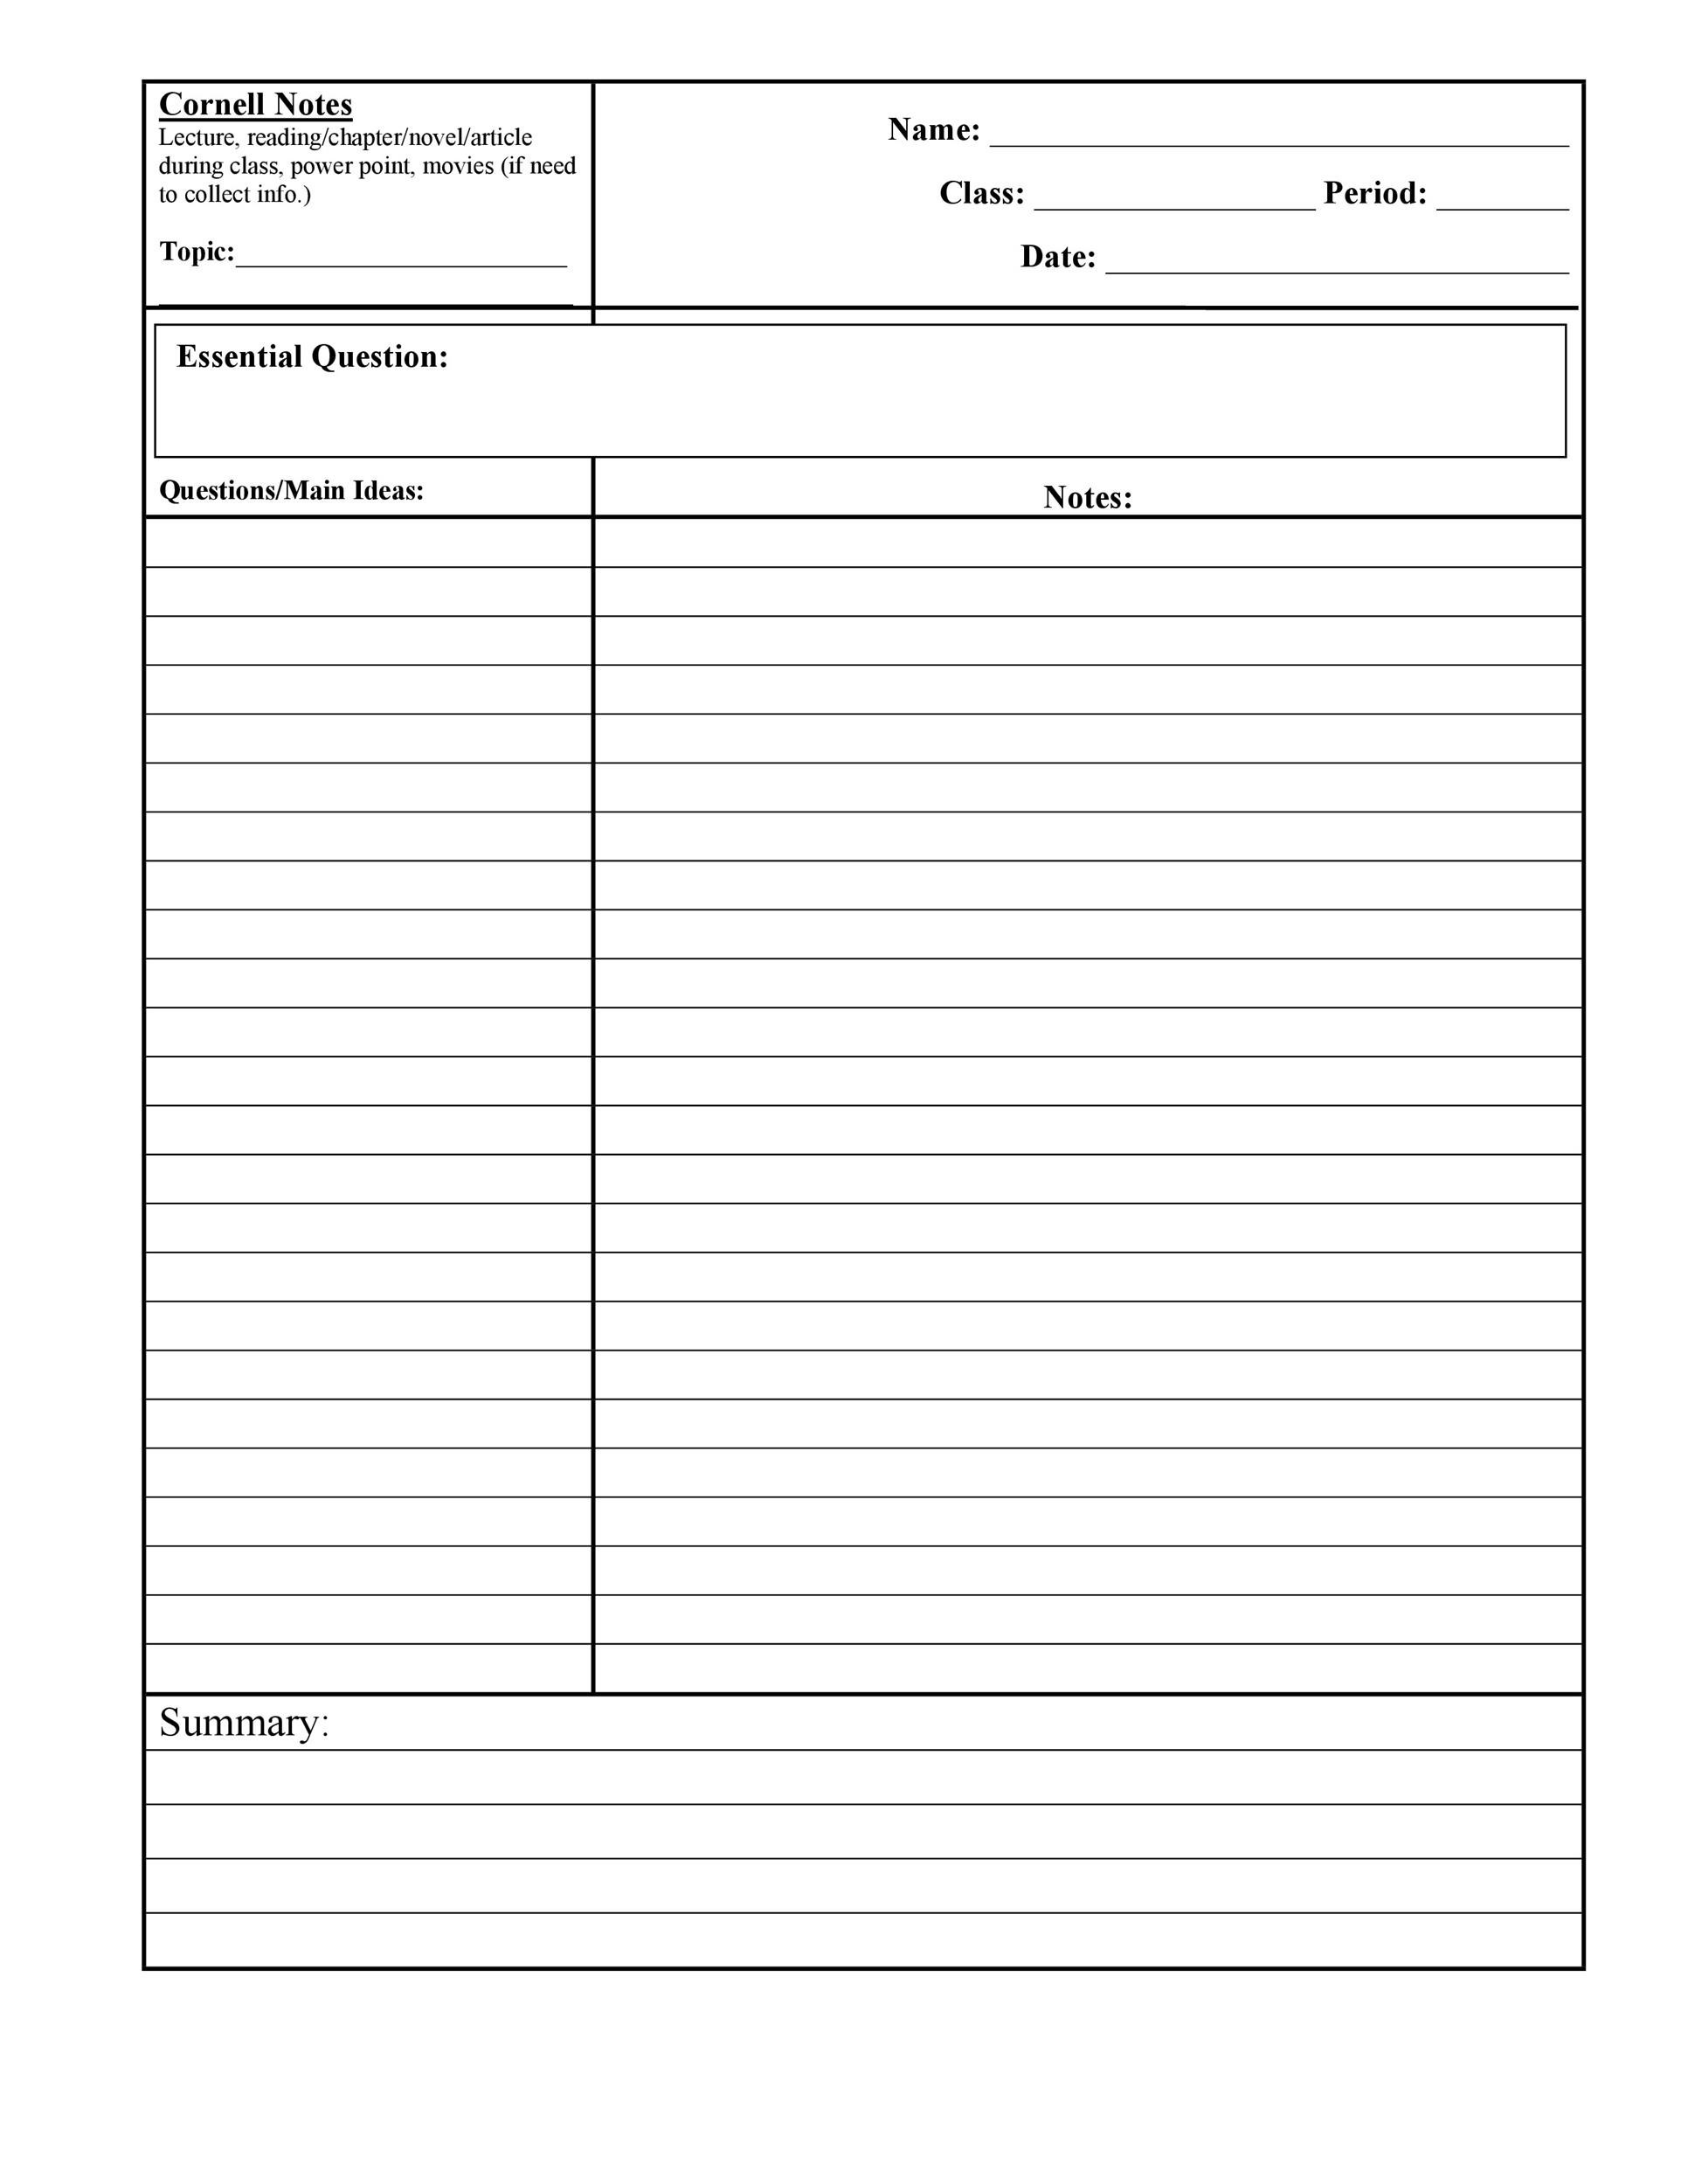 Free Cornell Notes Template 02